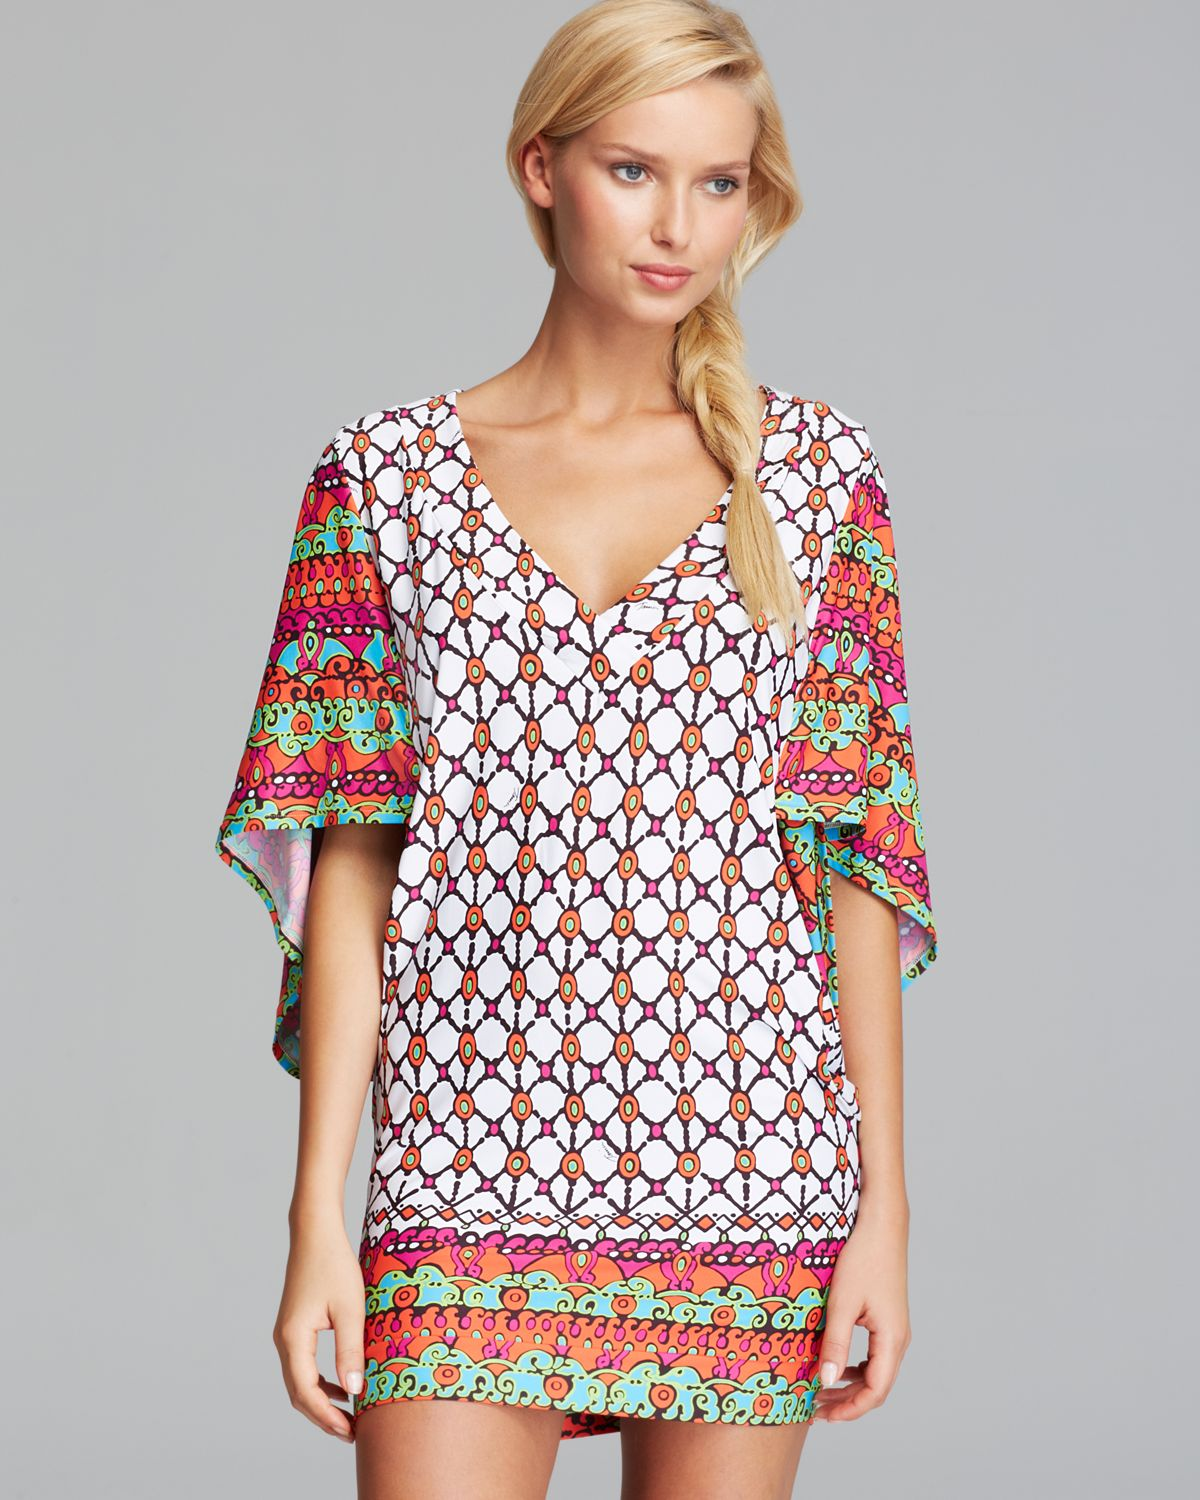 c8553f94bf2d3 Lyst trina turk venice beach cover up tunic in white bathing suit cover ups  jpg 1200x1500